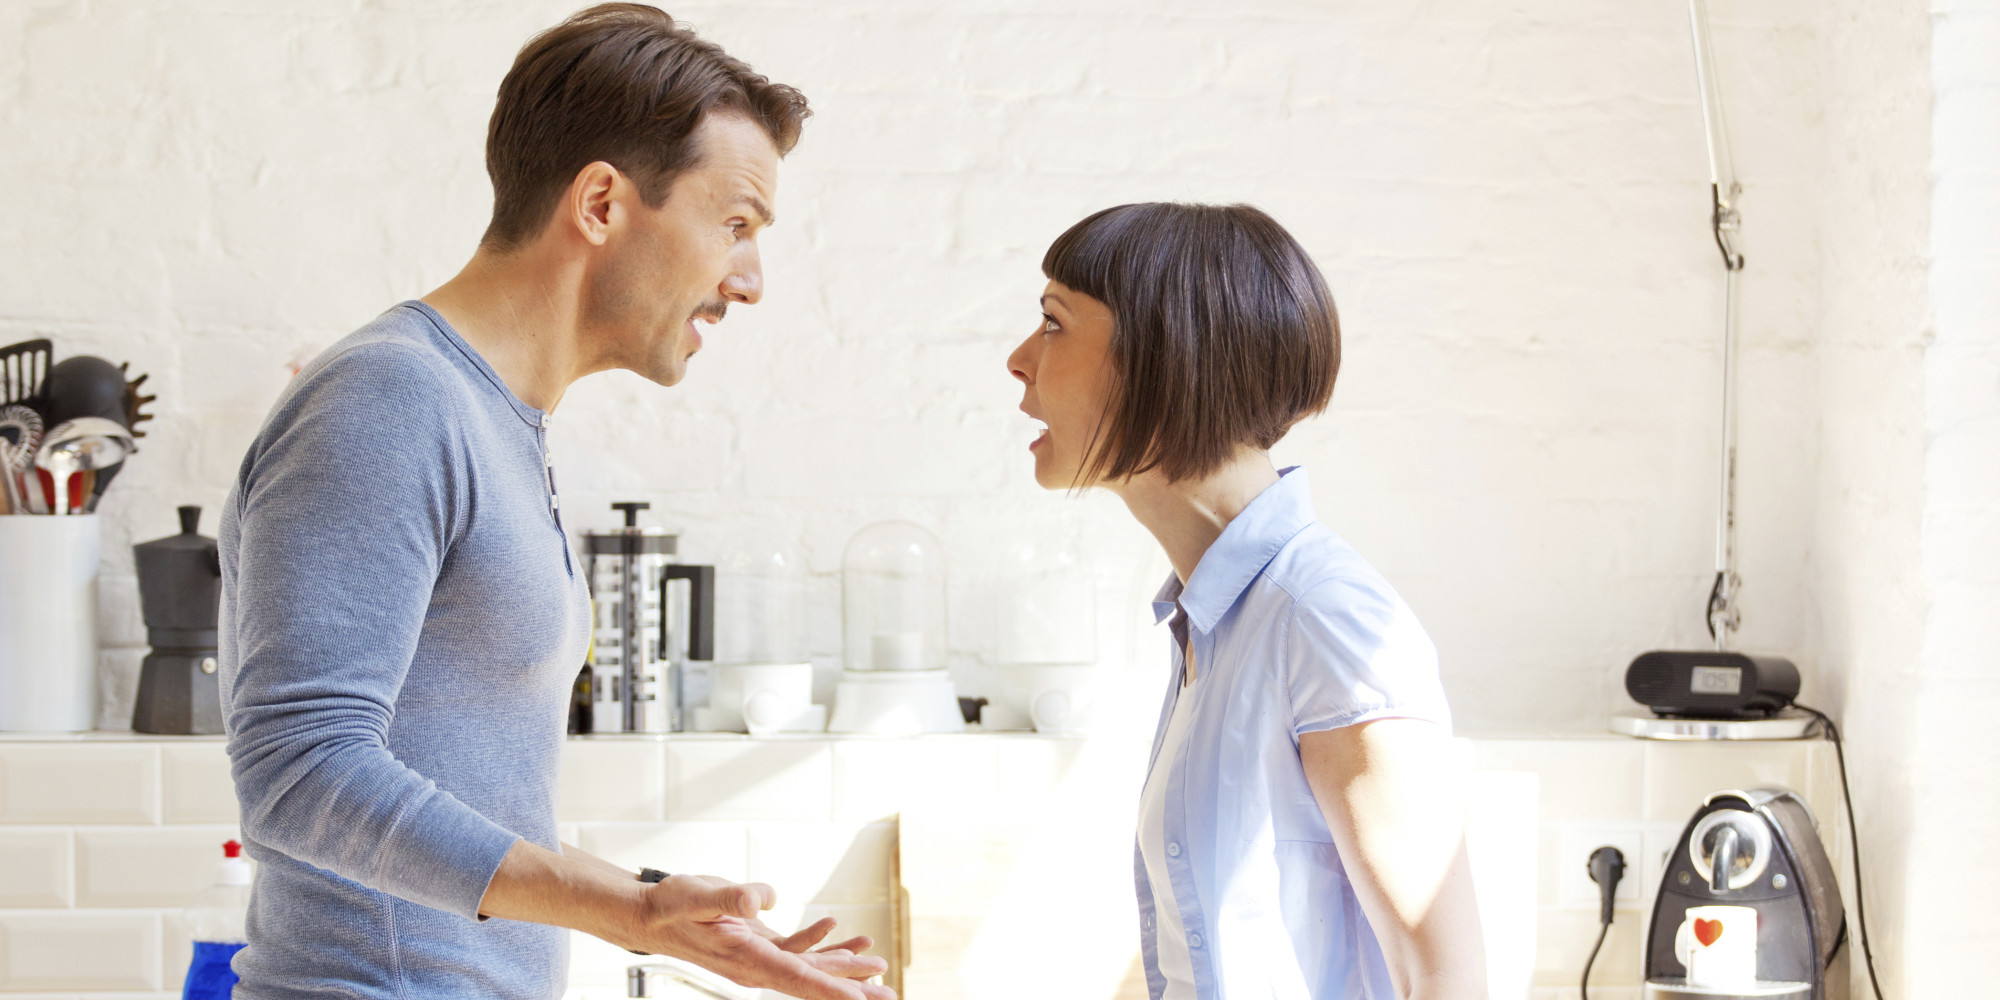 Couple screaming at each other in a kitchen